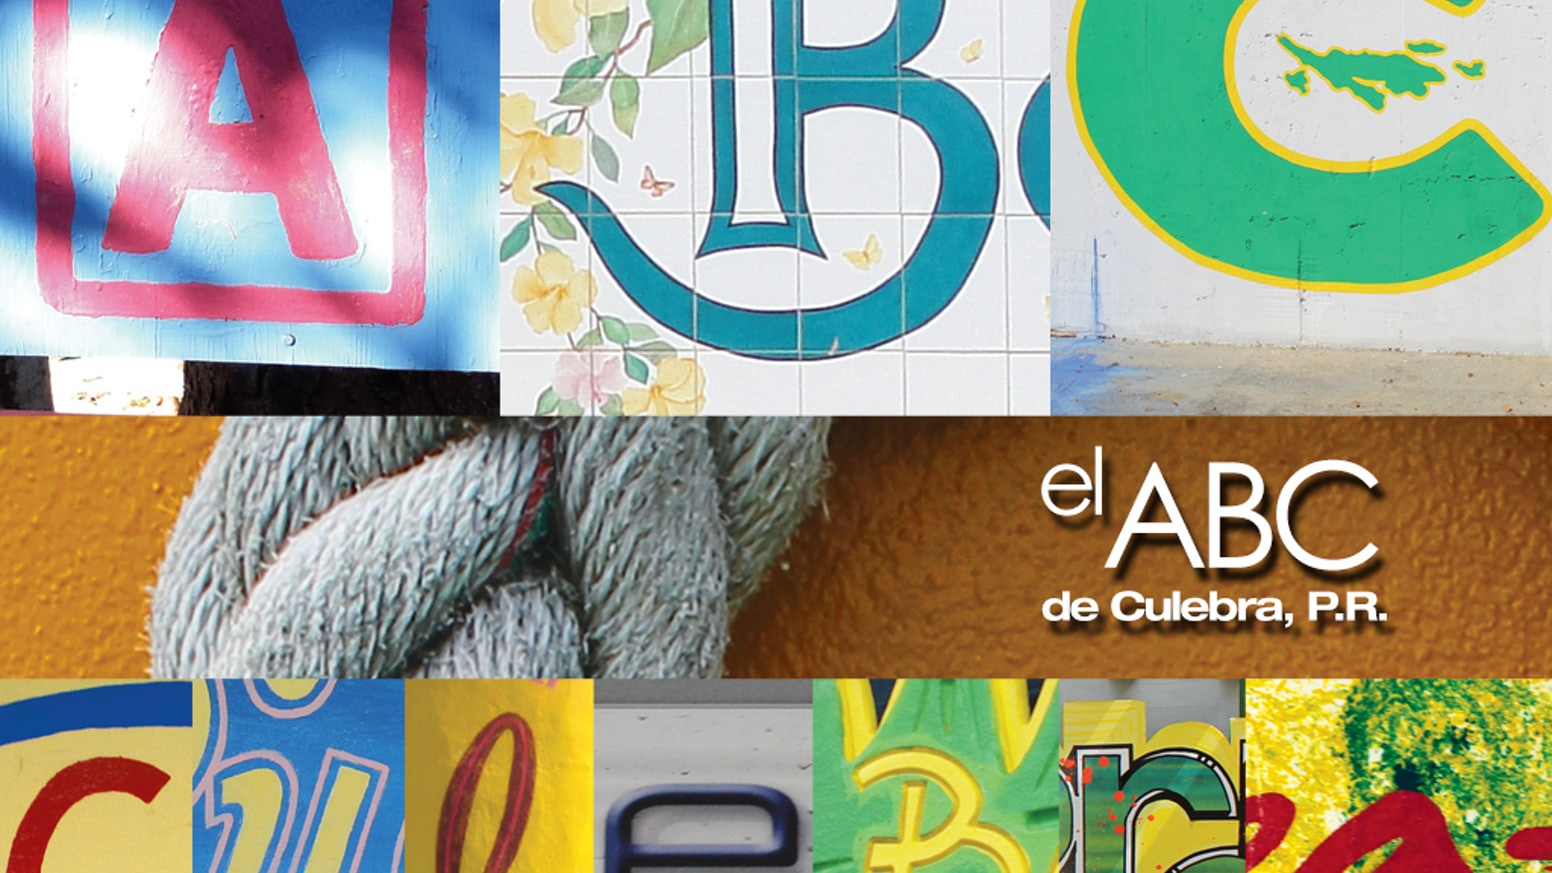 ABC of Culebra is a photo book inspired by the Island of Culebra, composed of 52 photos showing the alphabet in English & Spanish.